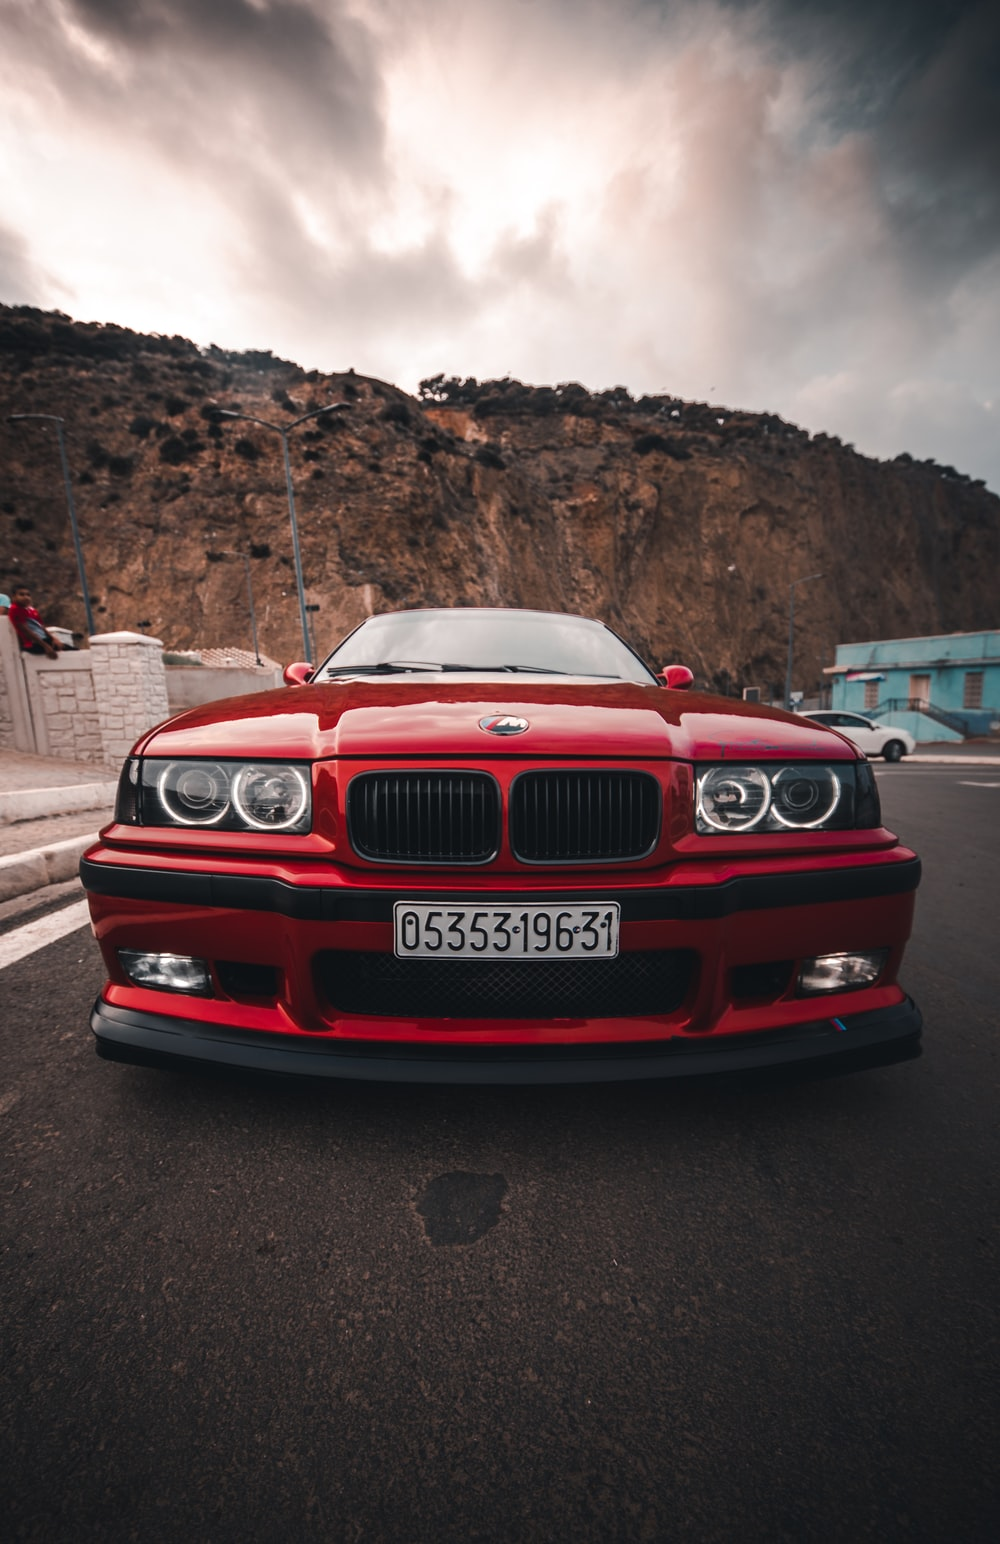 red bmw car on road during daytime